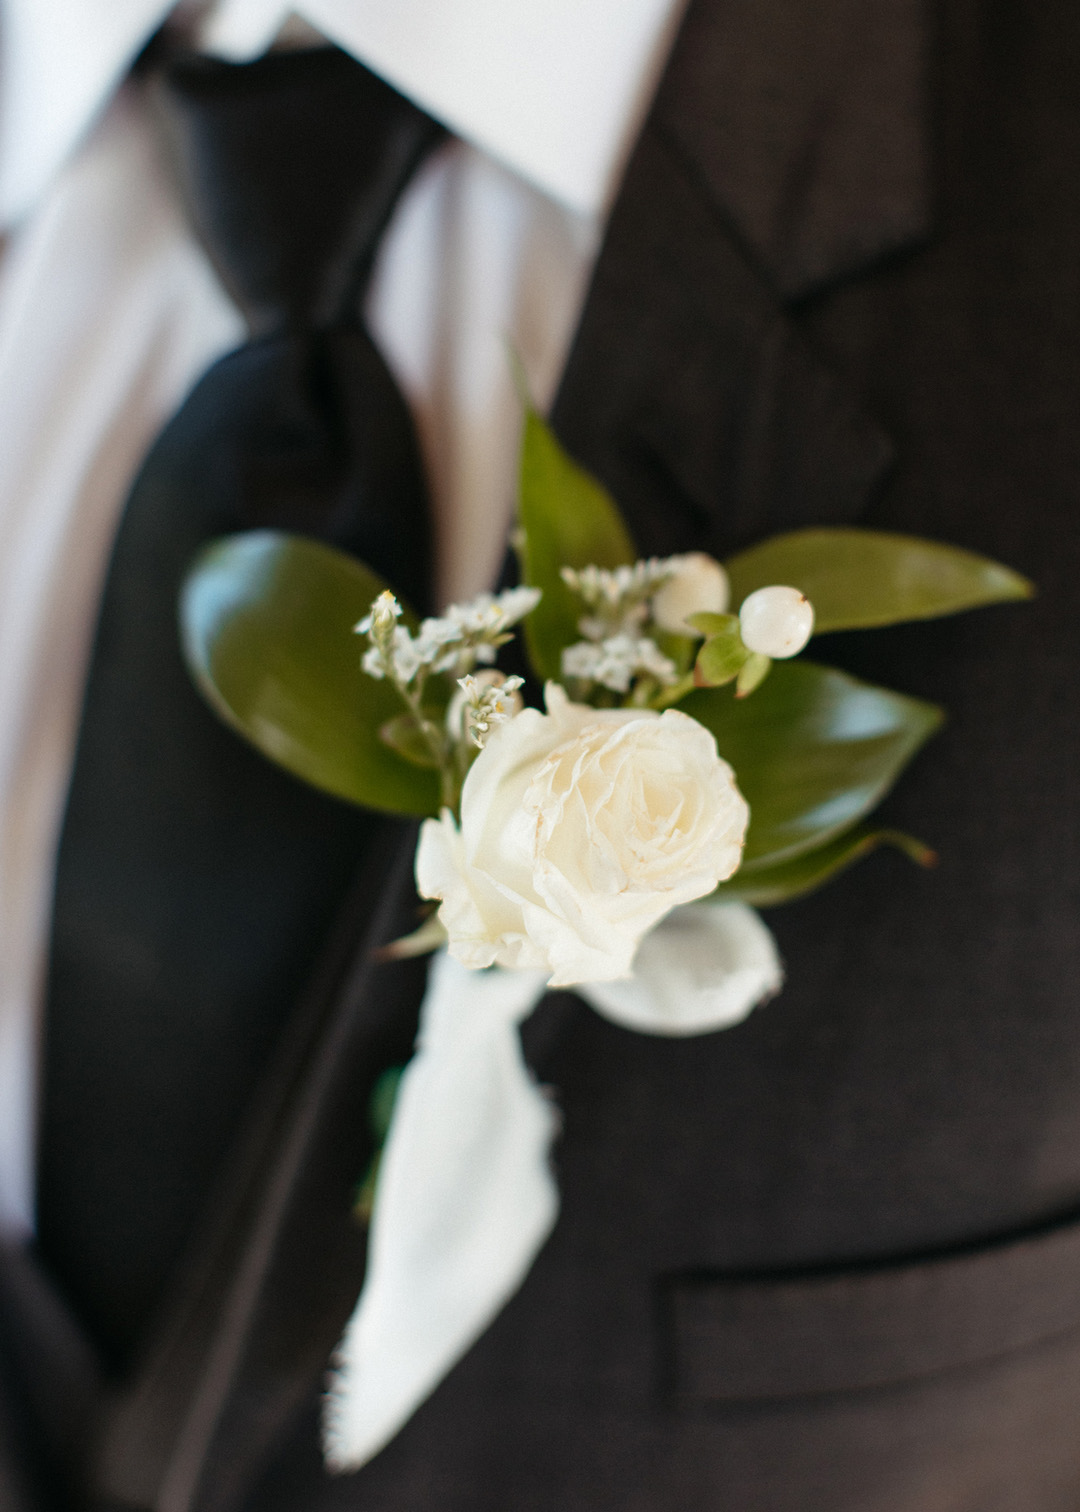 White flower and greenery wedding boutonniere